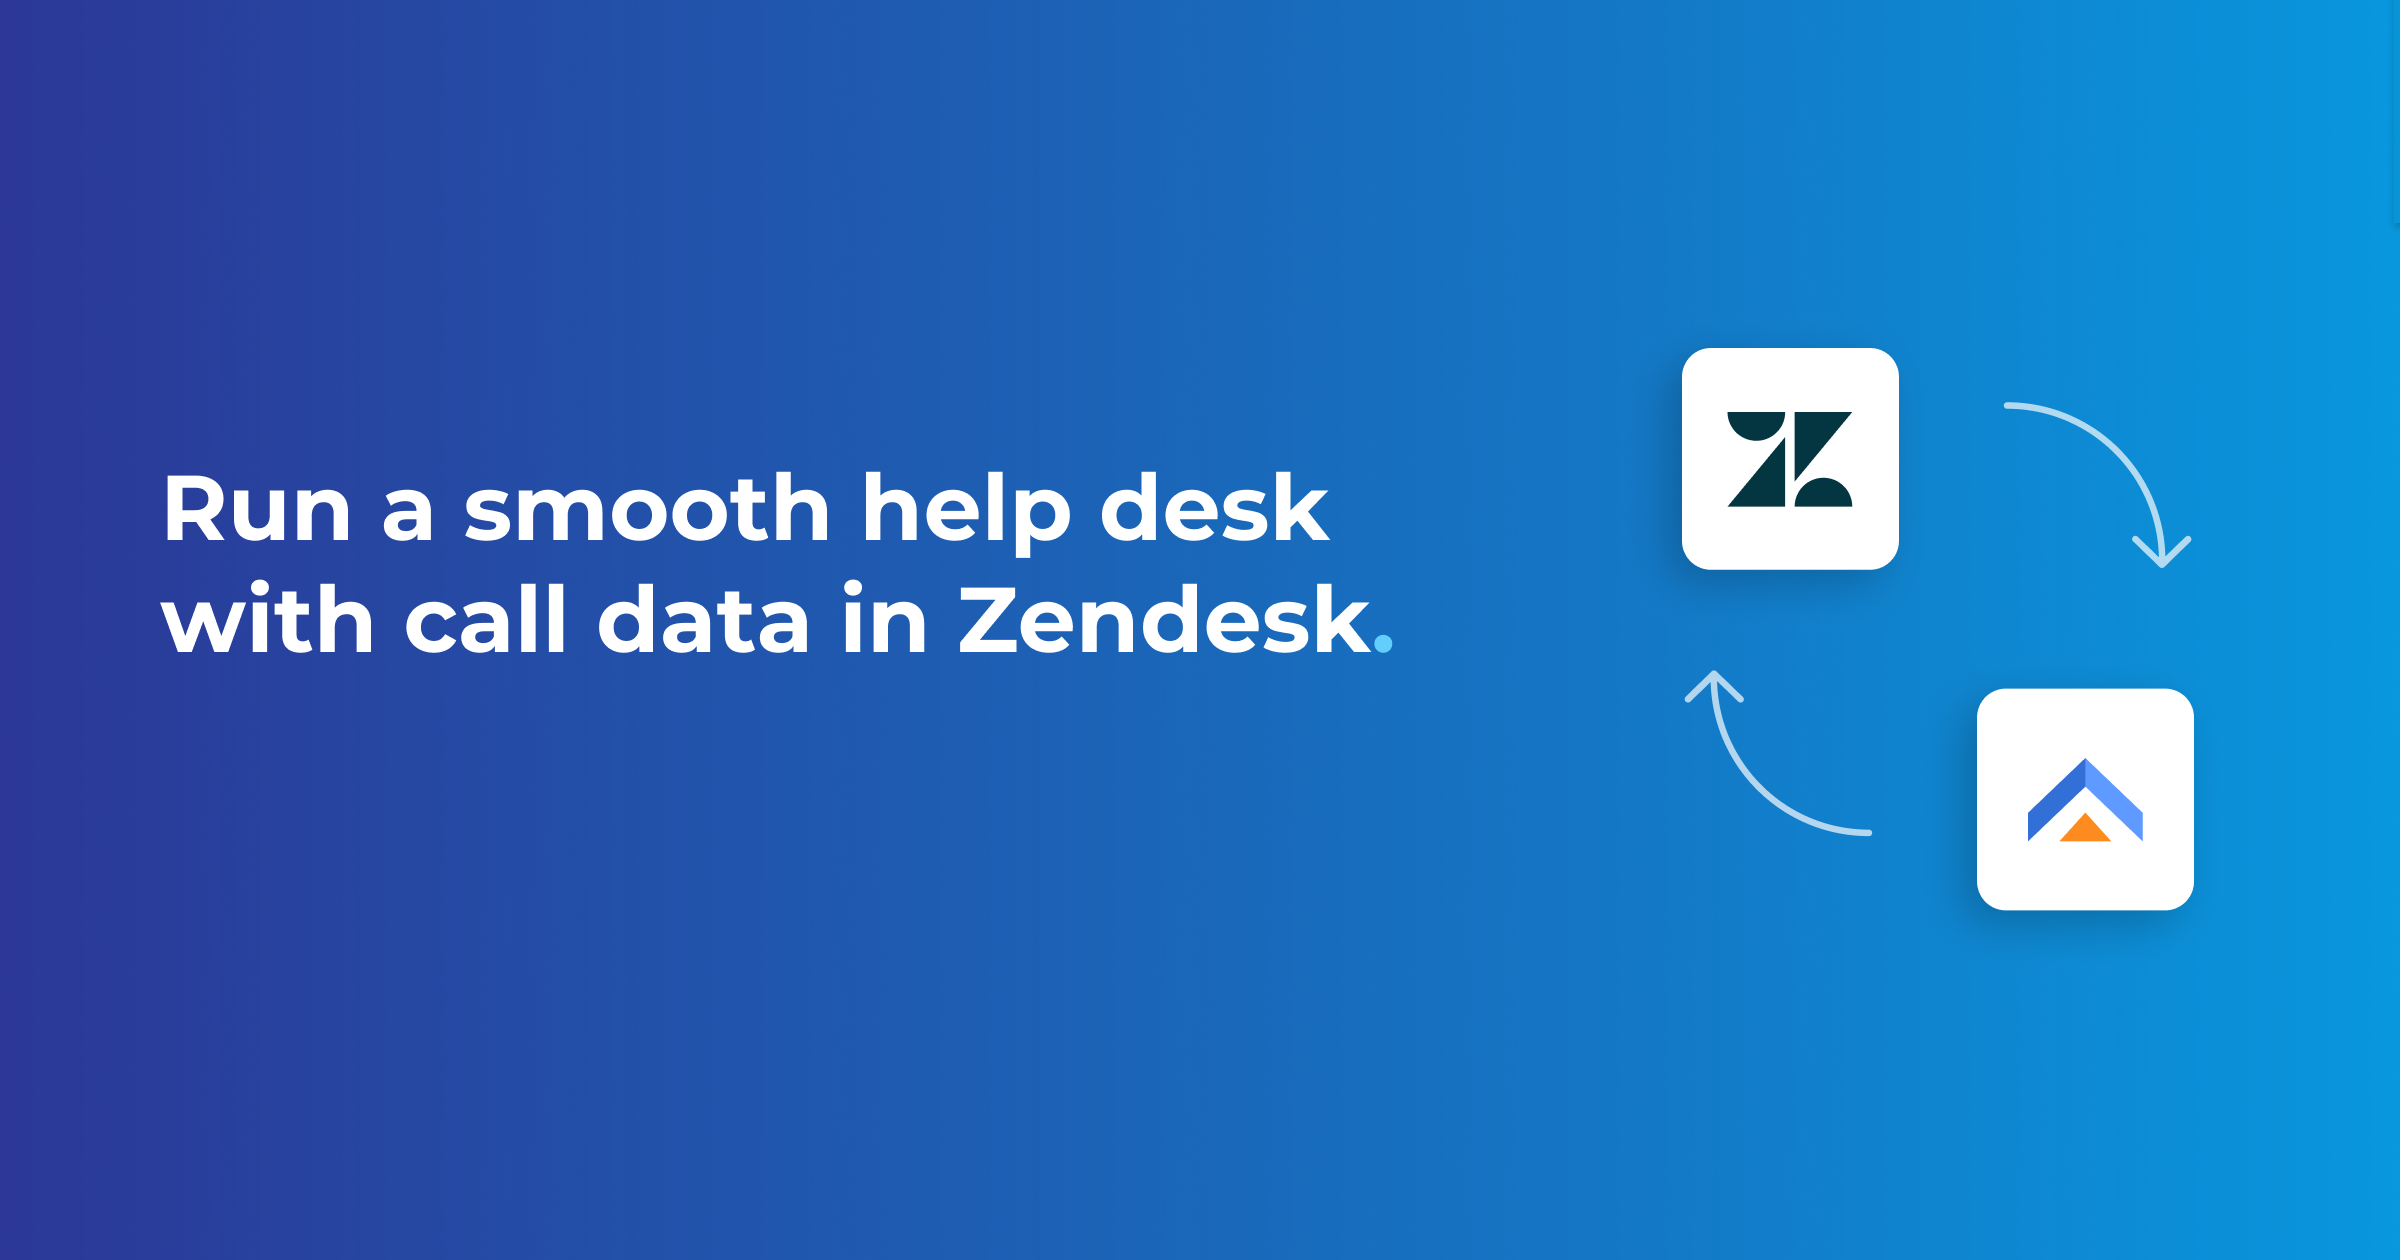 Zendesk integration: sync call and chat data to your help desk